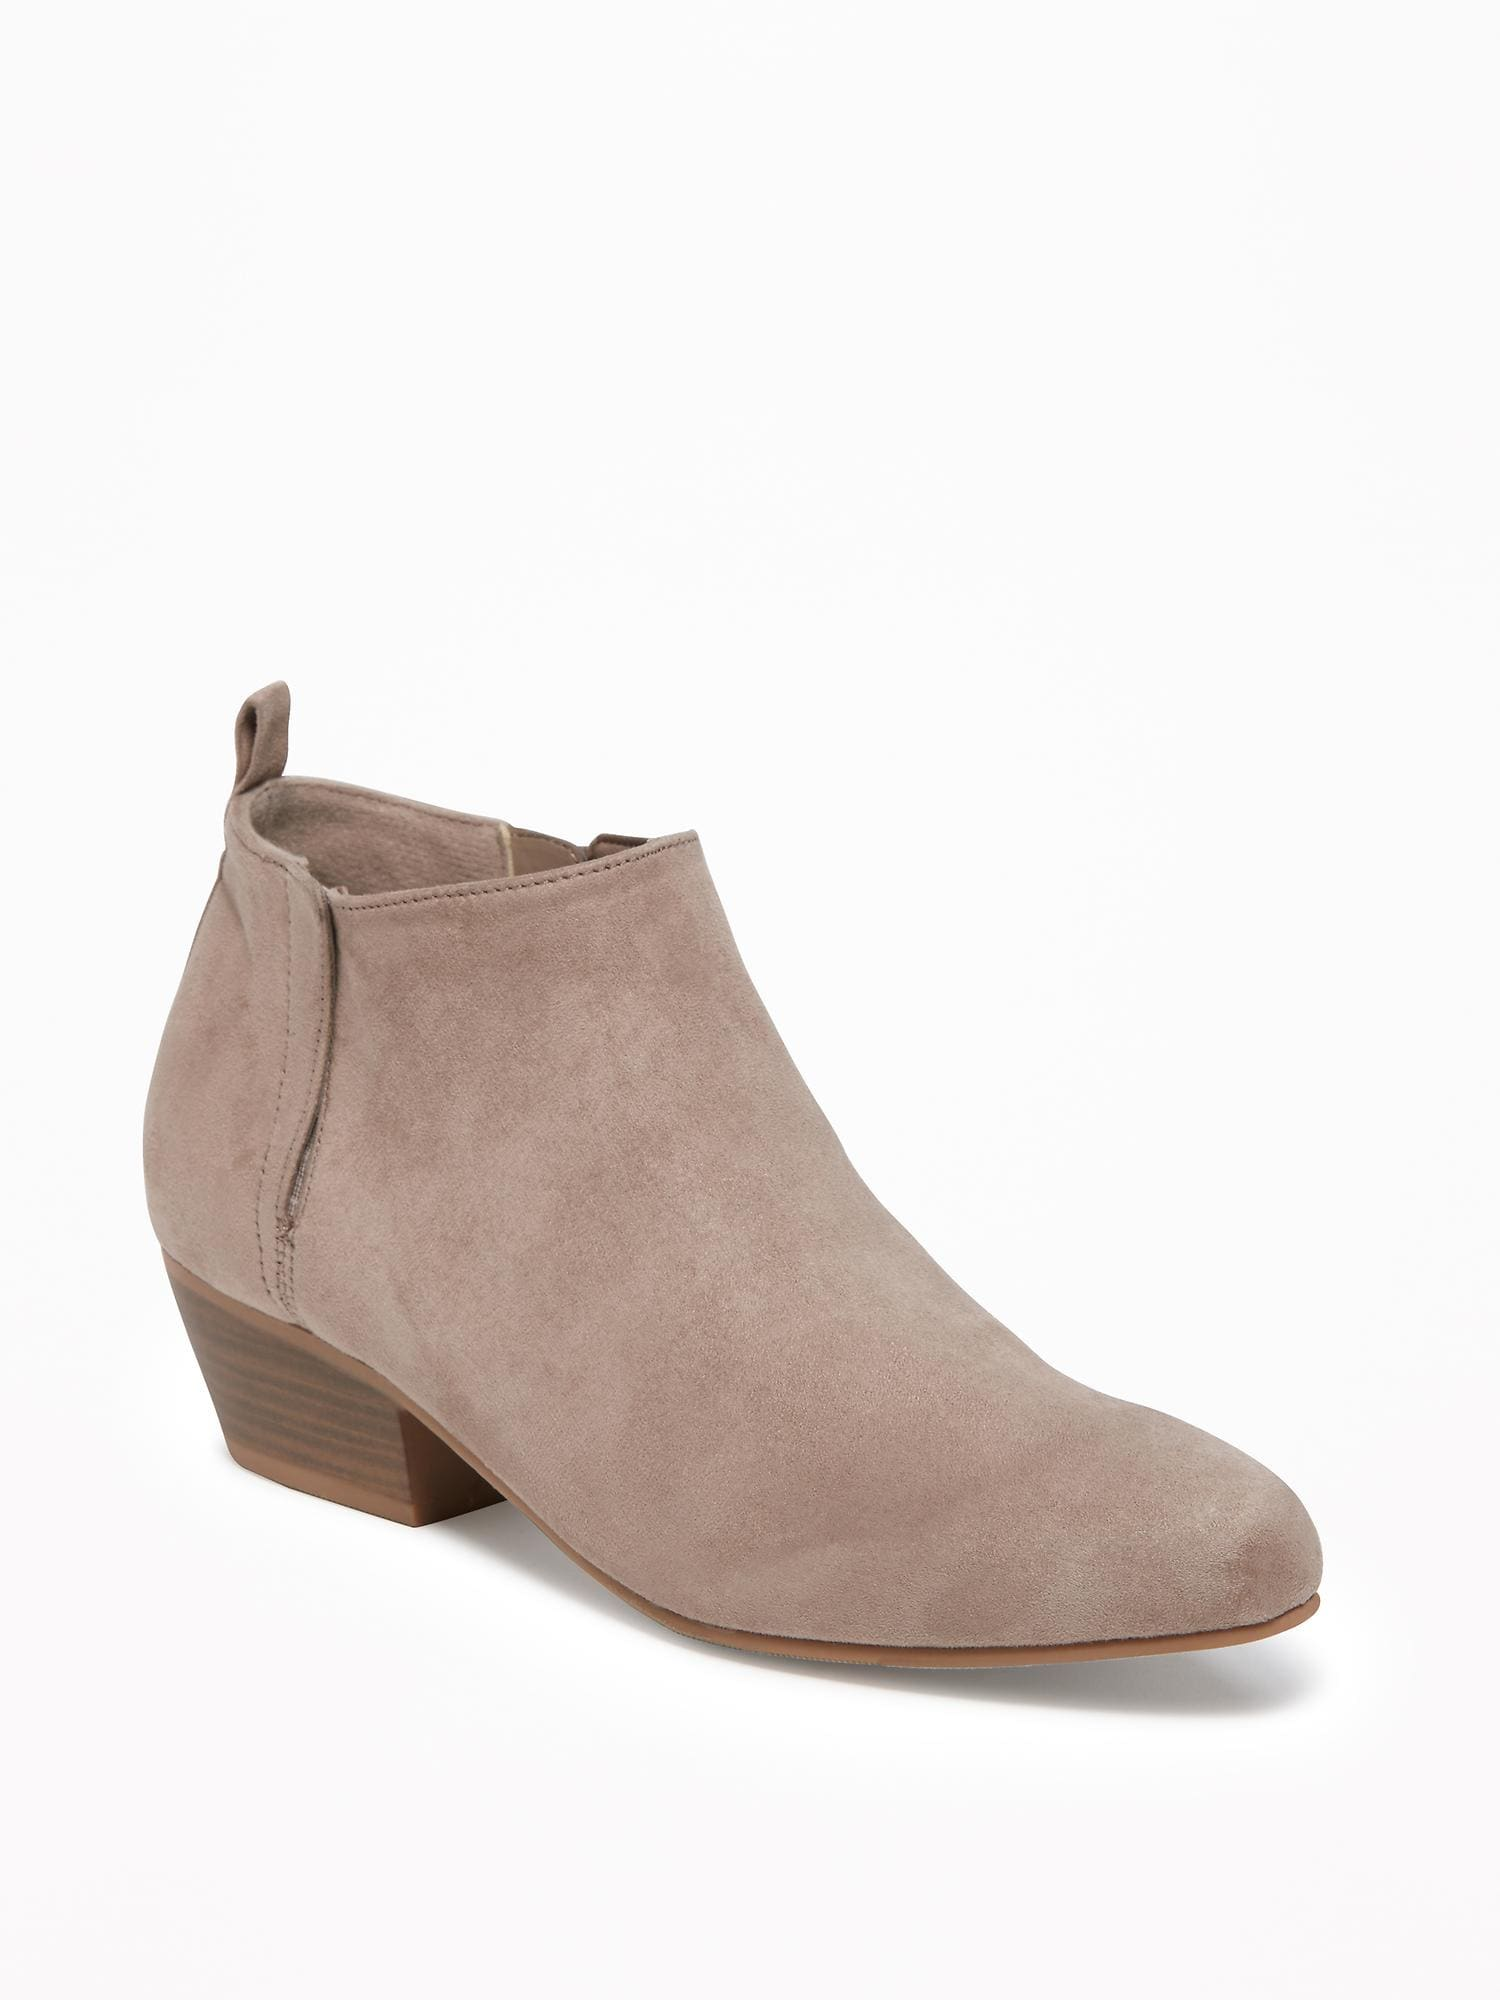 71a1f842af7eb Sueded Ankle Boots for Women